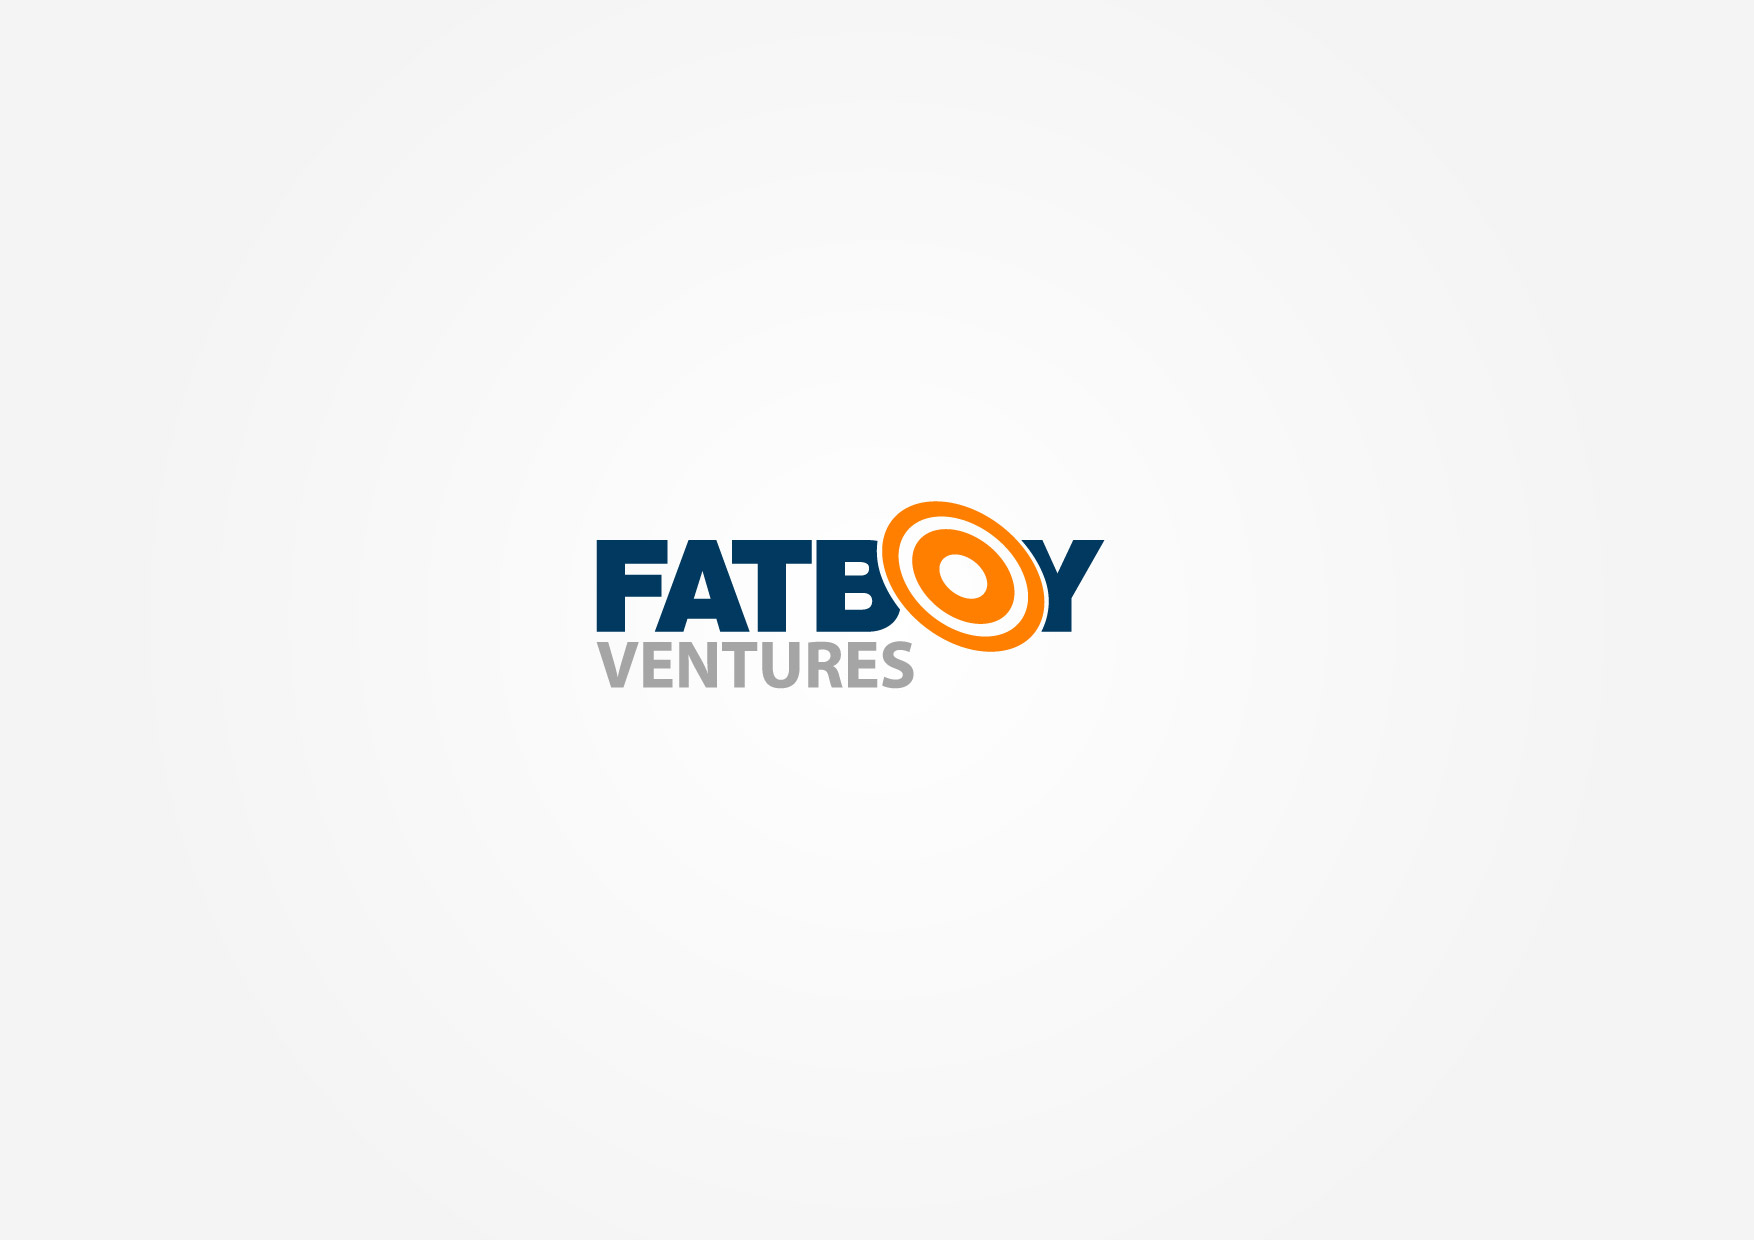 Logo Design by Osi Indra - Entry No. 43 in the Logo Design Contest Fun Logo Design for Fat Boy Ventures.